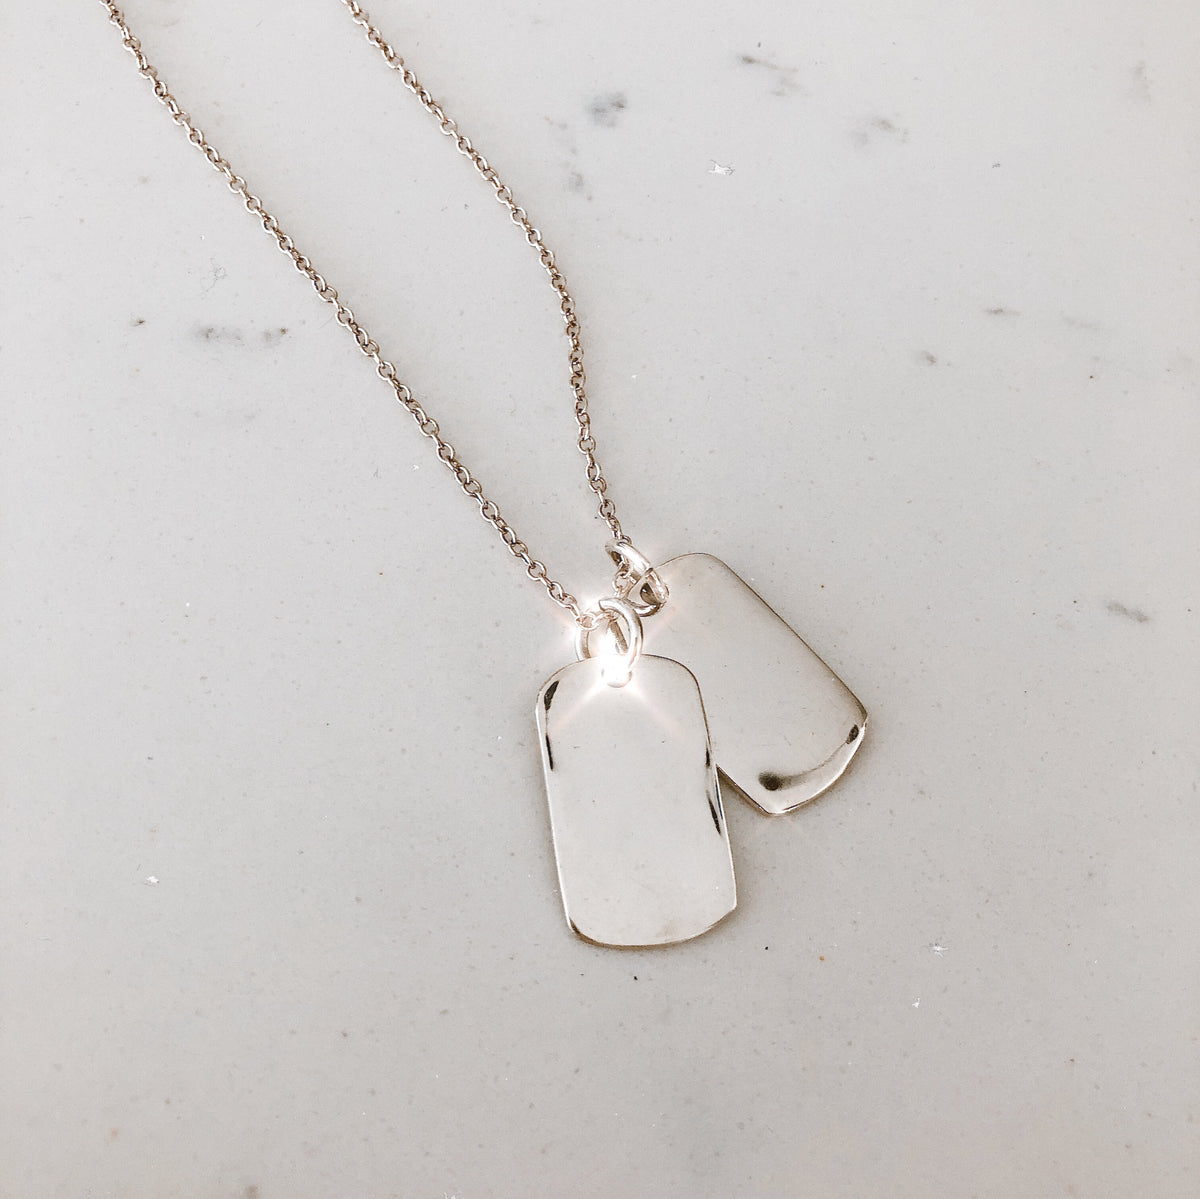 The Silver Double ID Tag Necklace